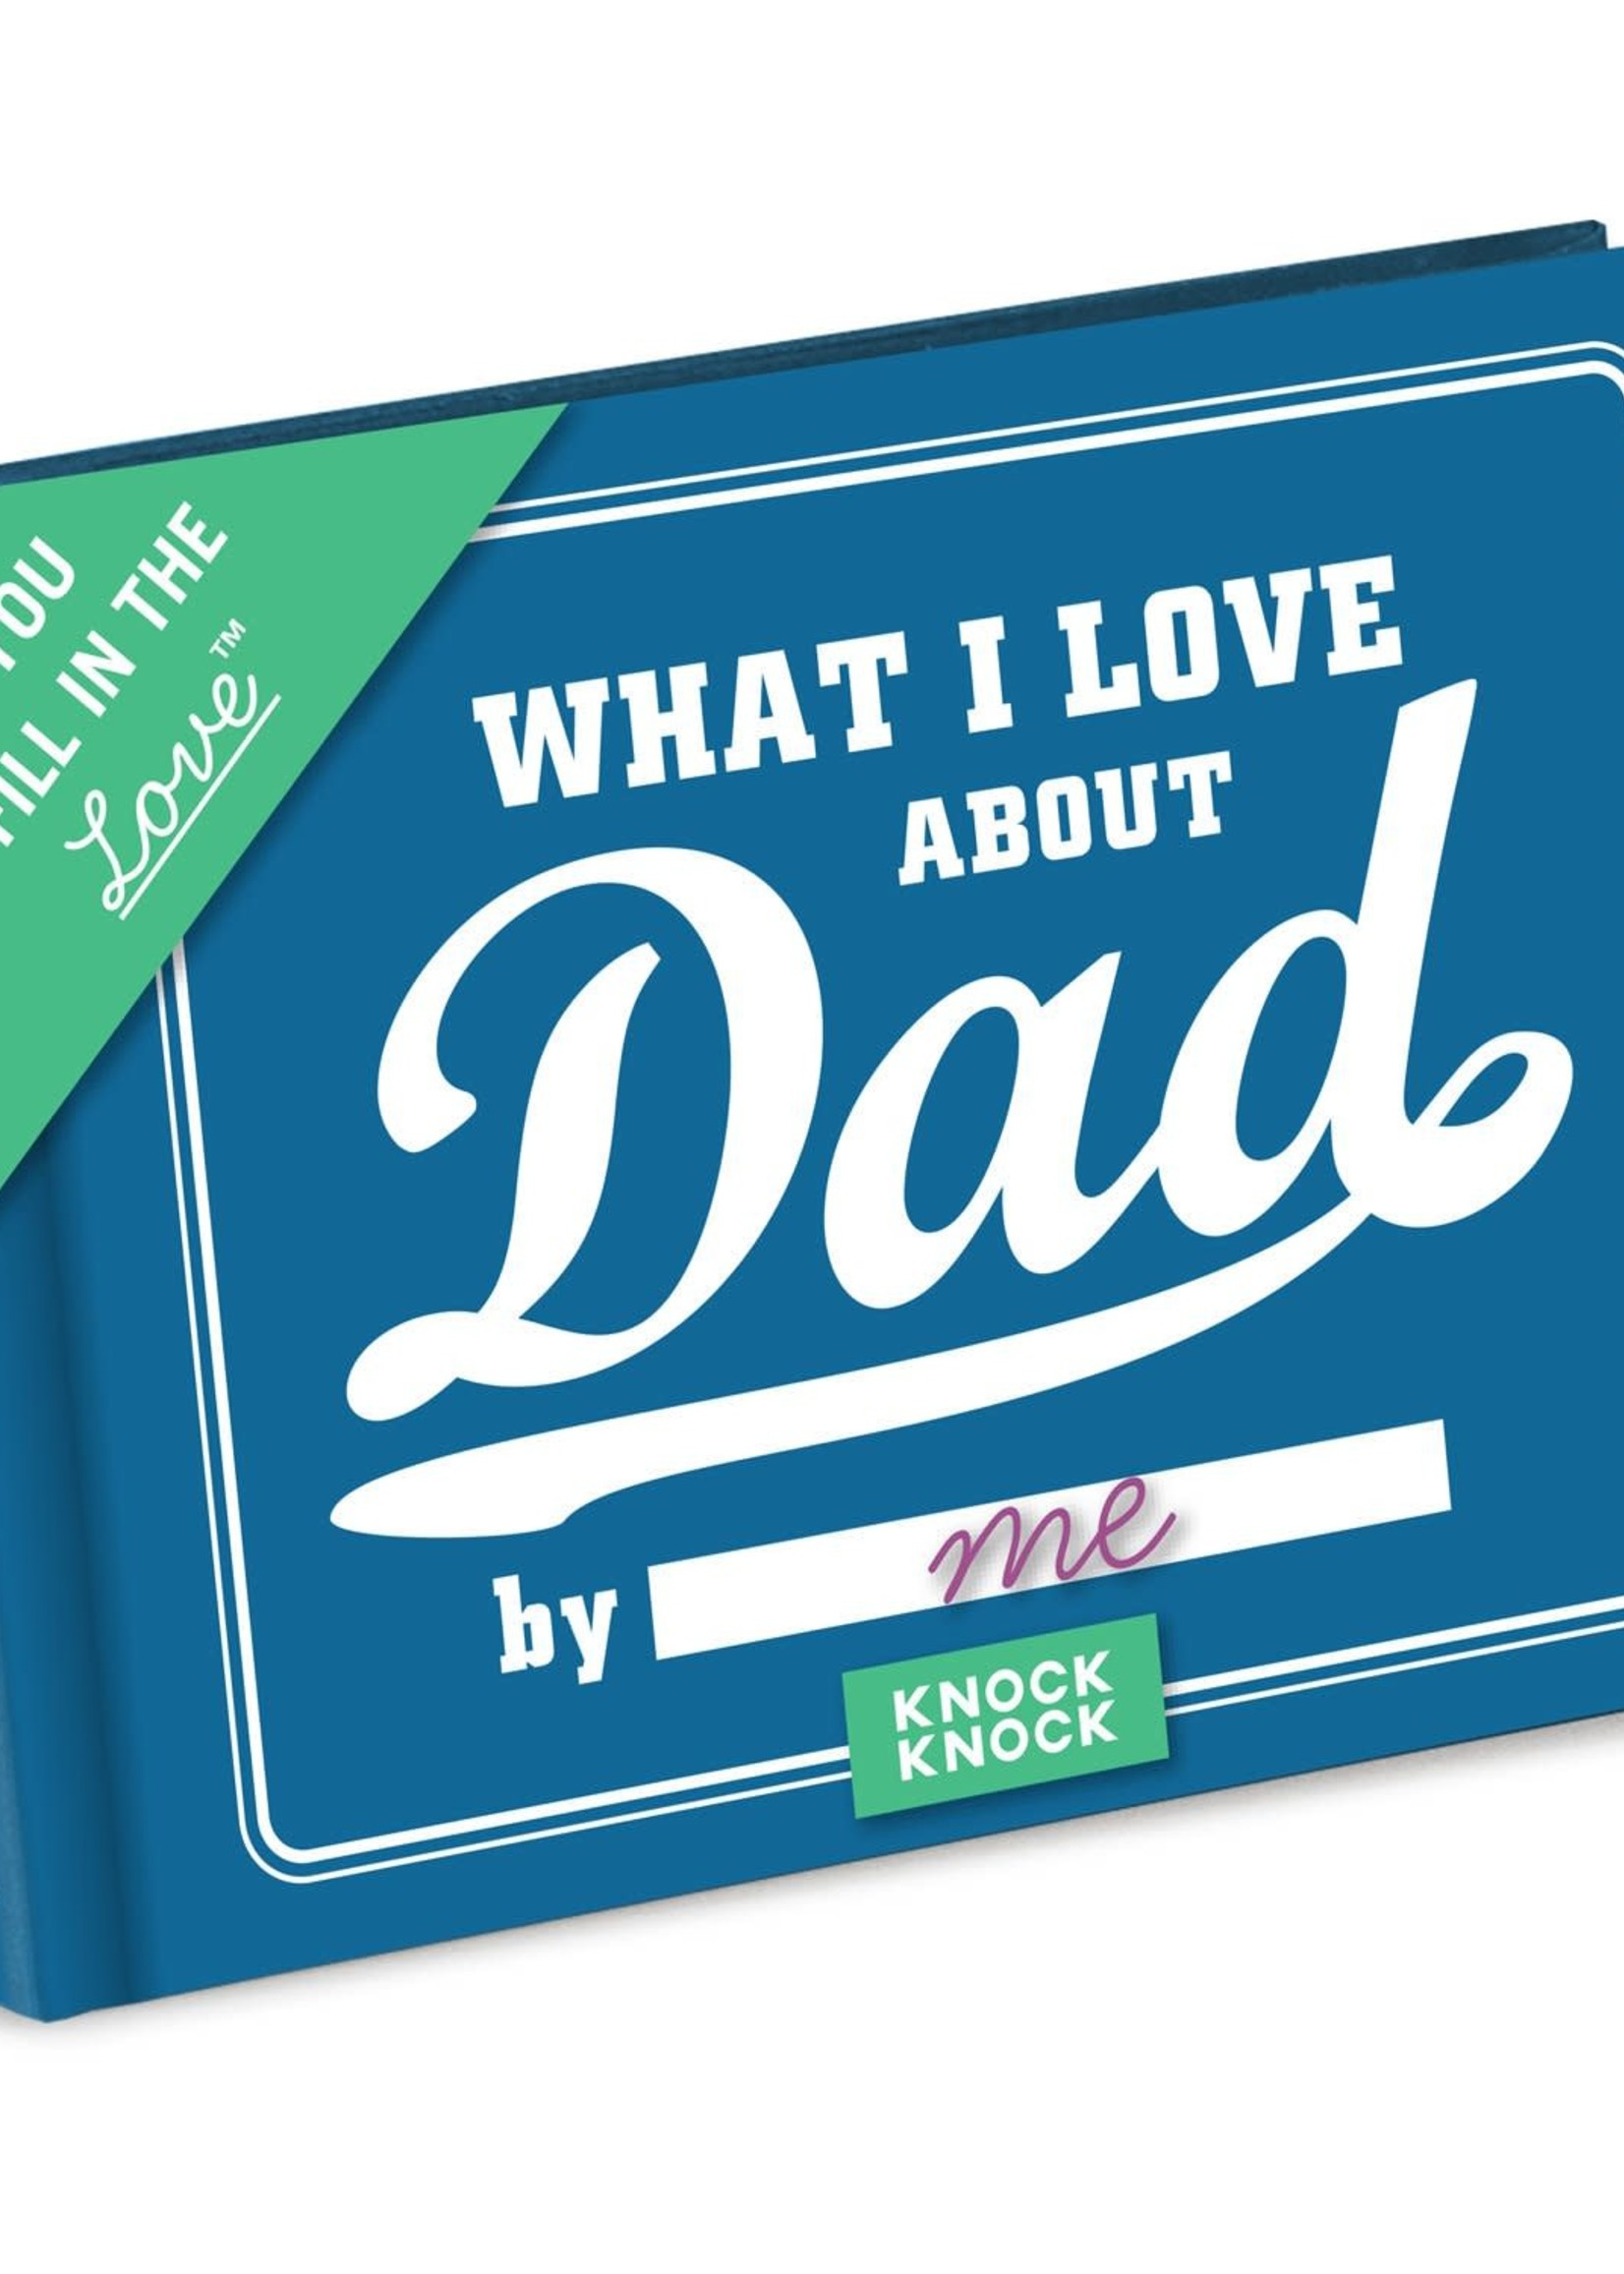 KNOCK KNOCK KNOCK KNOCK WHAT I LOVE ABOUT DAD FILL IN THE LOVE GIFT BOOK